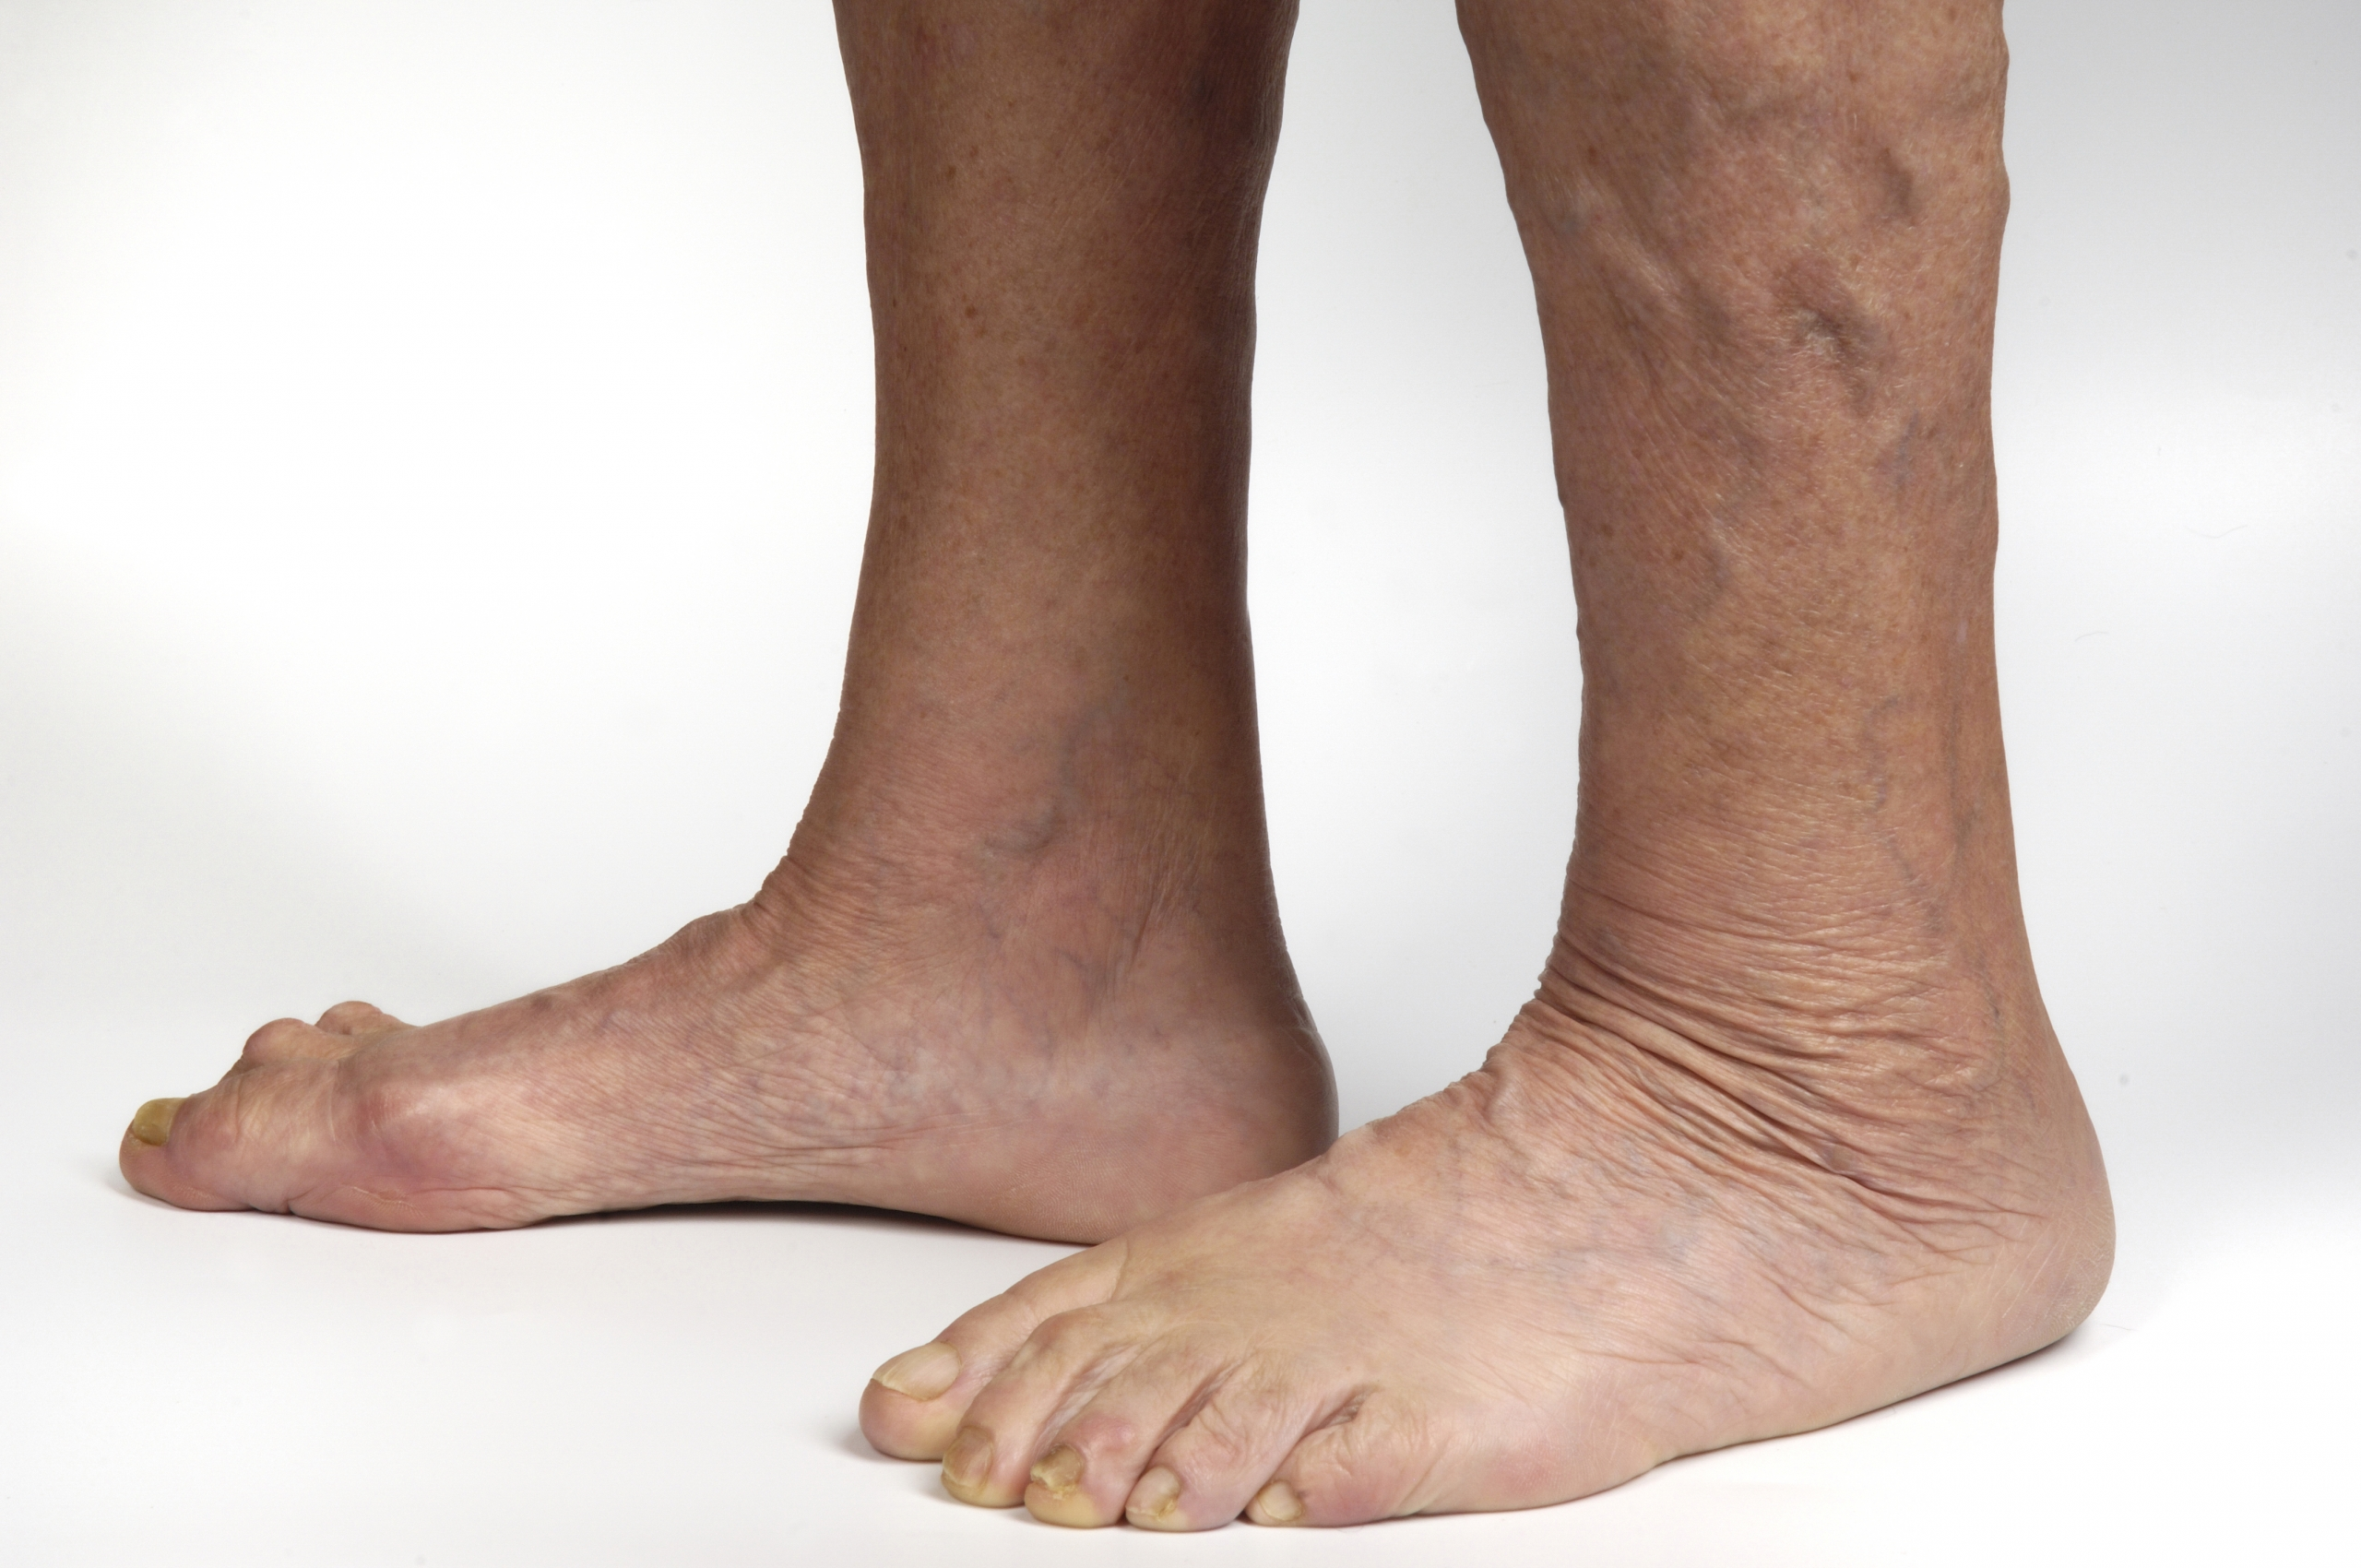 Ankles with varicose veins